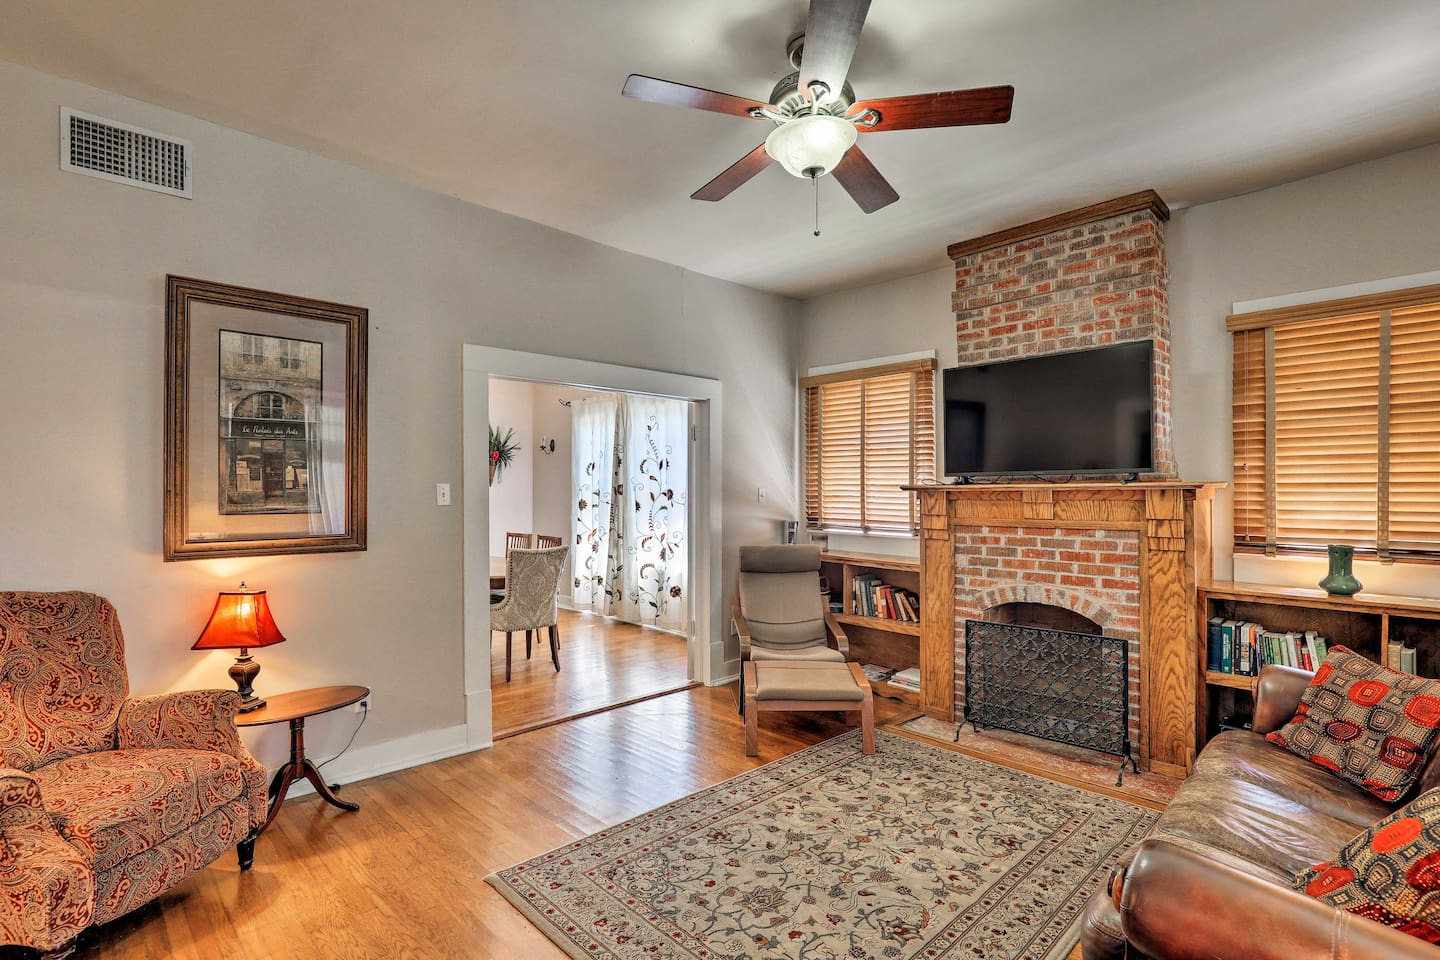 Make yourself at home in this charming Fort Worth vacation rental!